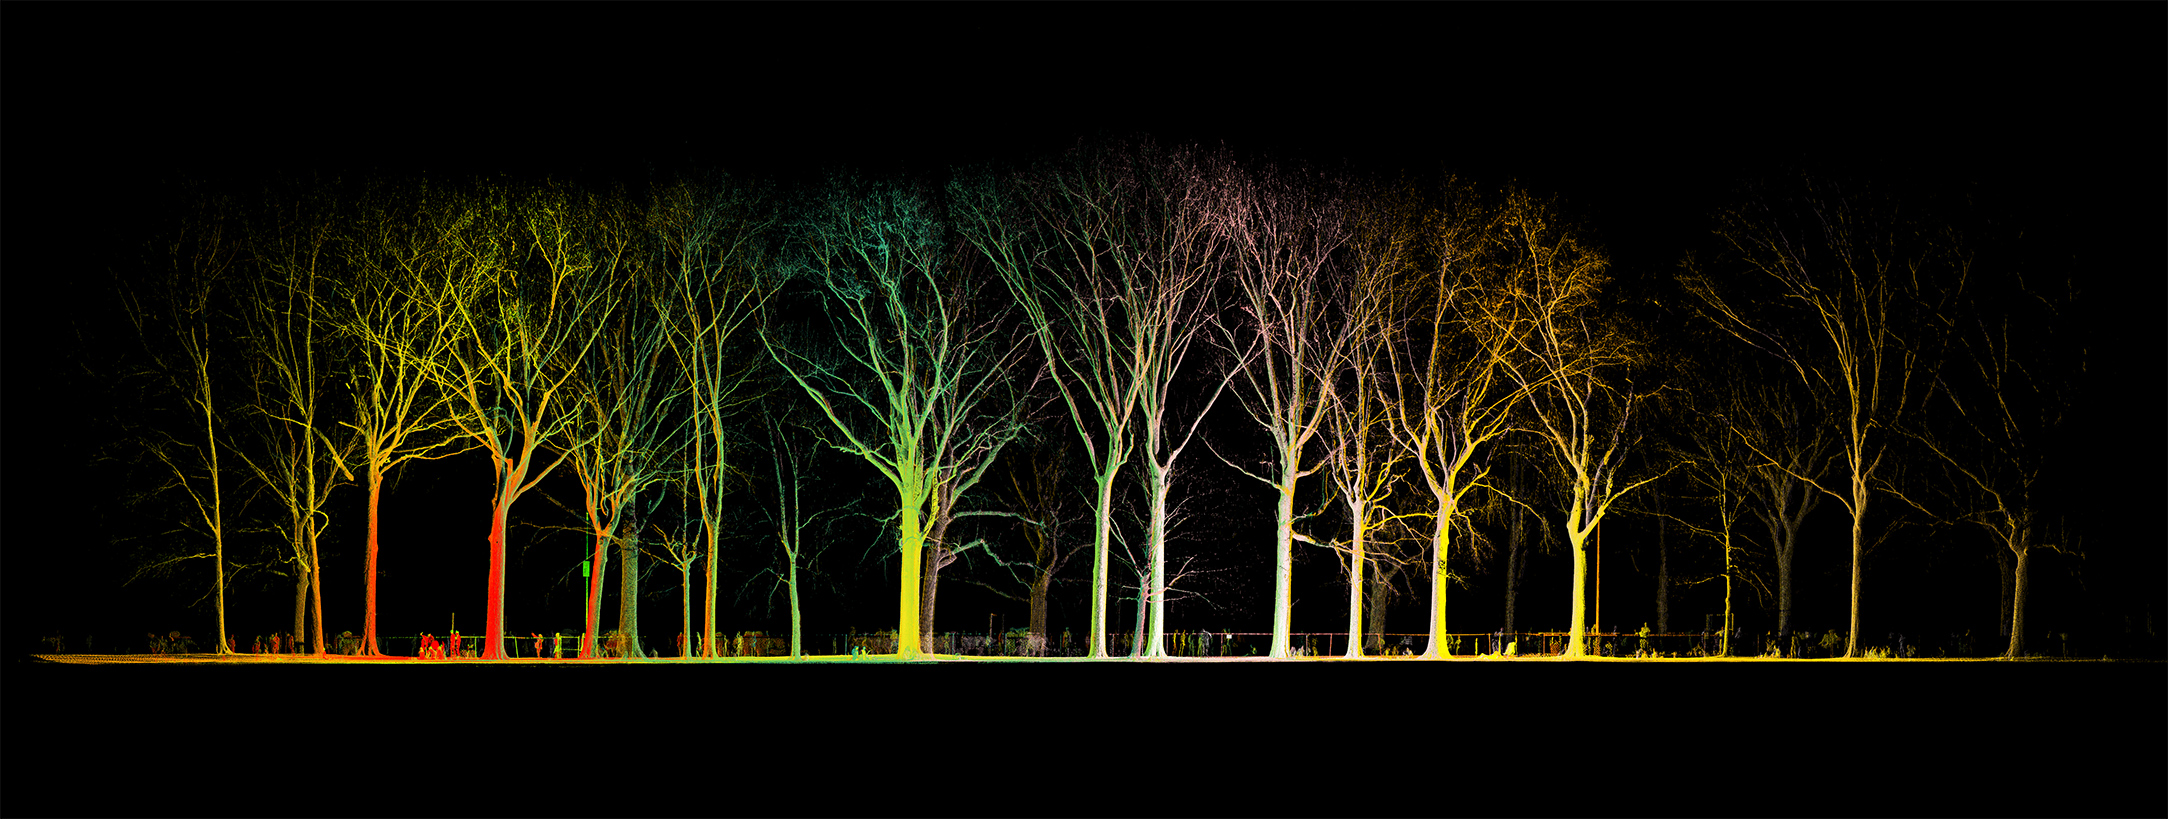 mynd-workshop-central-park-sheep-meadow-trees-15-3D-laser-scanning-point-cloud-new-york.jpg